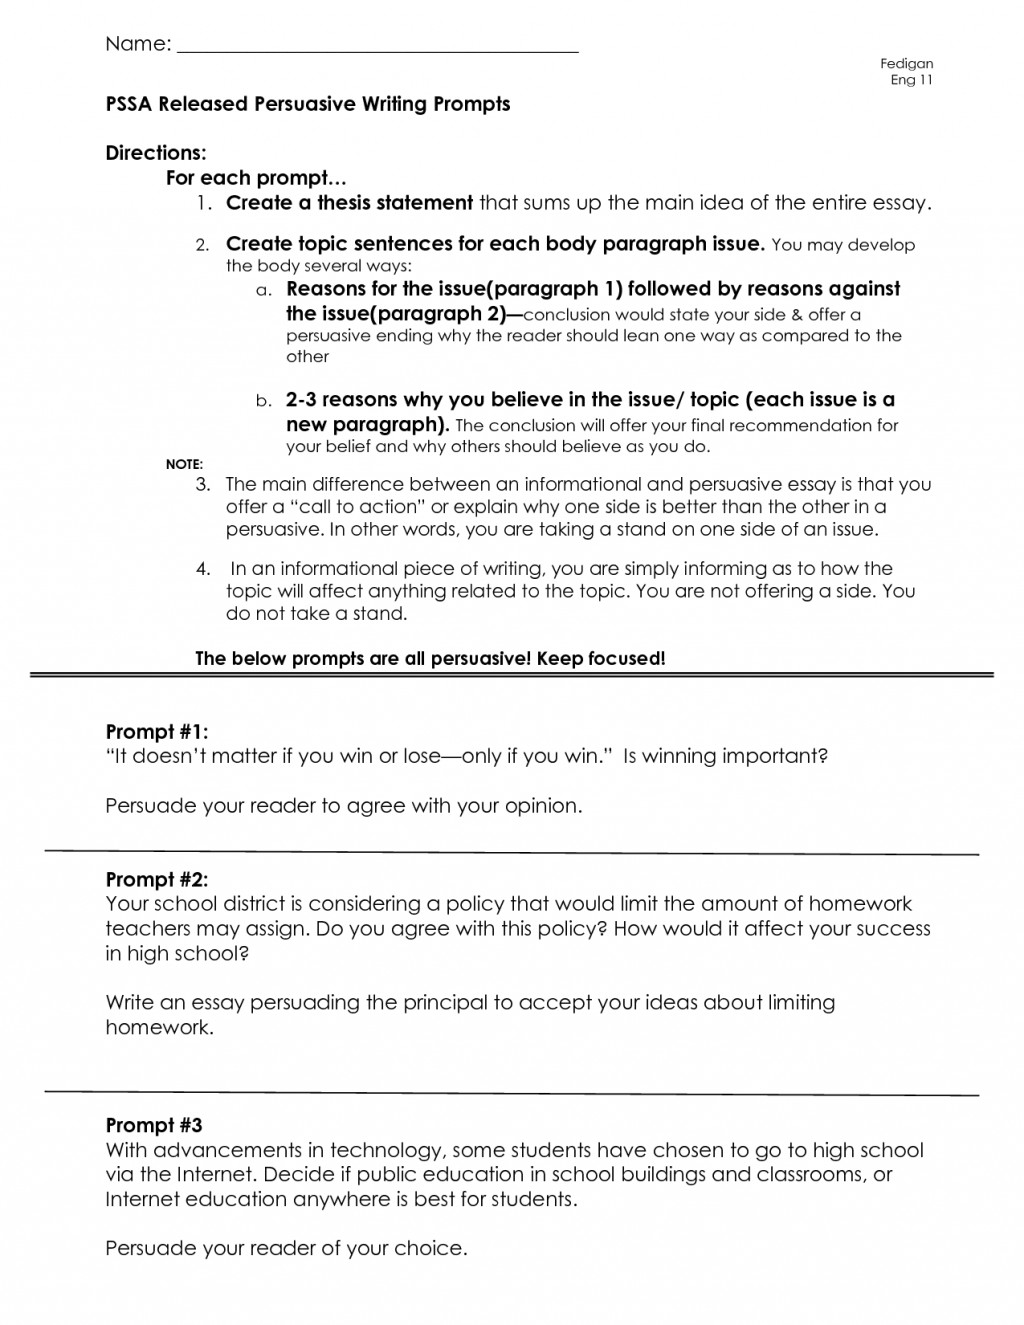 014 Persuasive Essay 6th Grade Writing Prompts 654695 Best Topics For Lord Of The Flies High School Seniors Argumentative Frankenstein Large